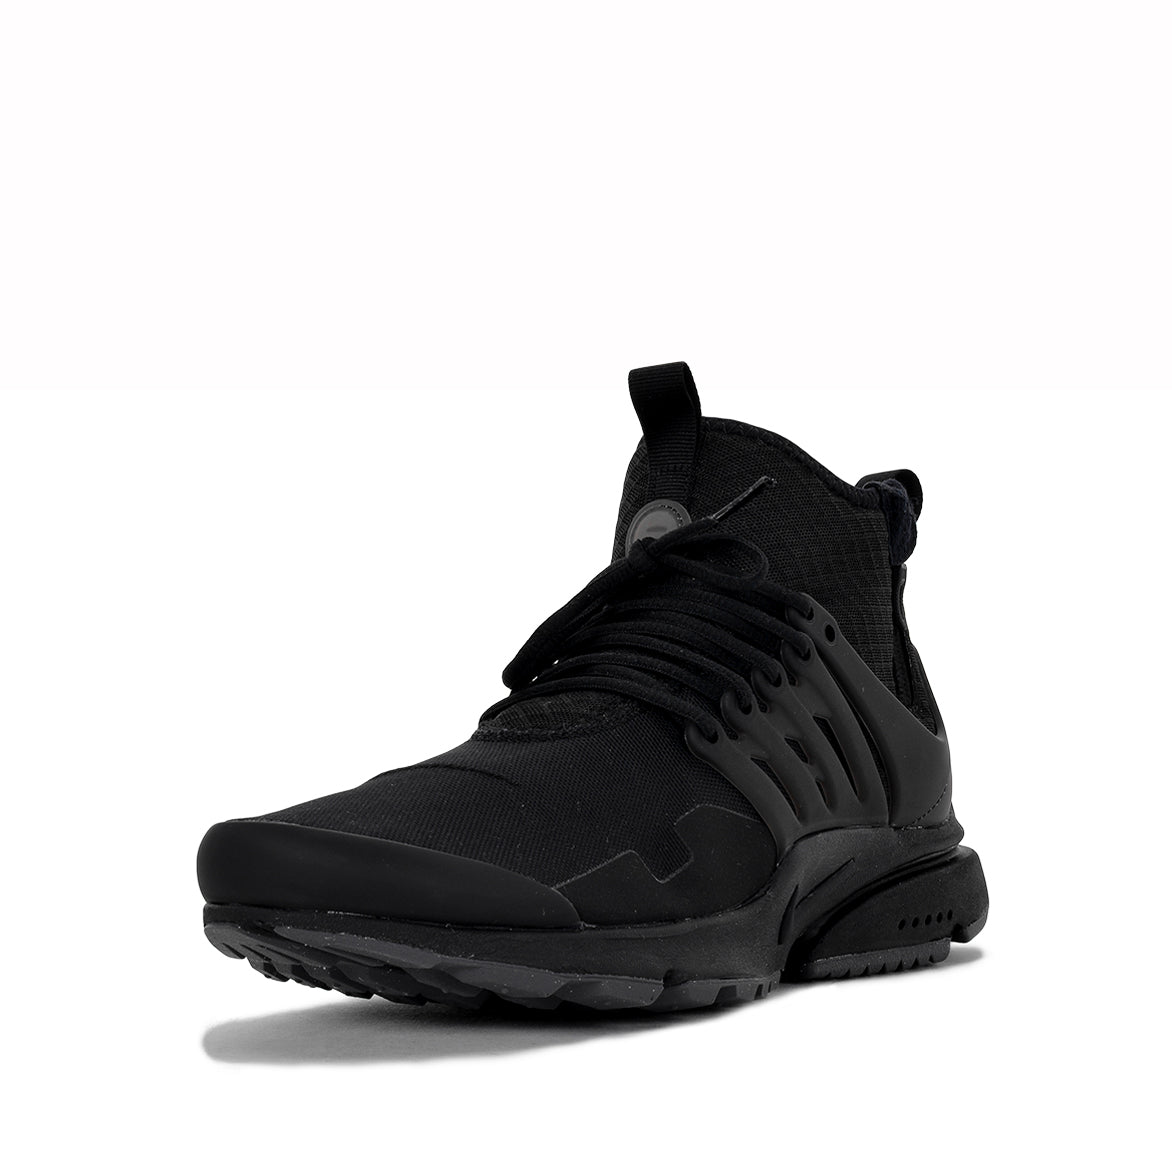 AIR PRESTO MID UTILITY - BLACK / DARK GREY